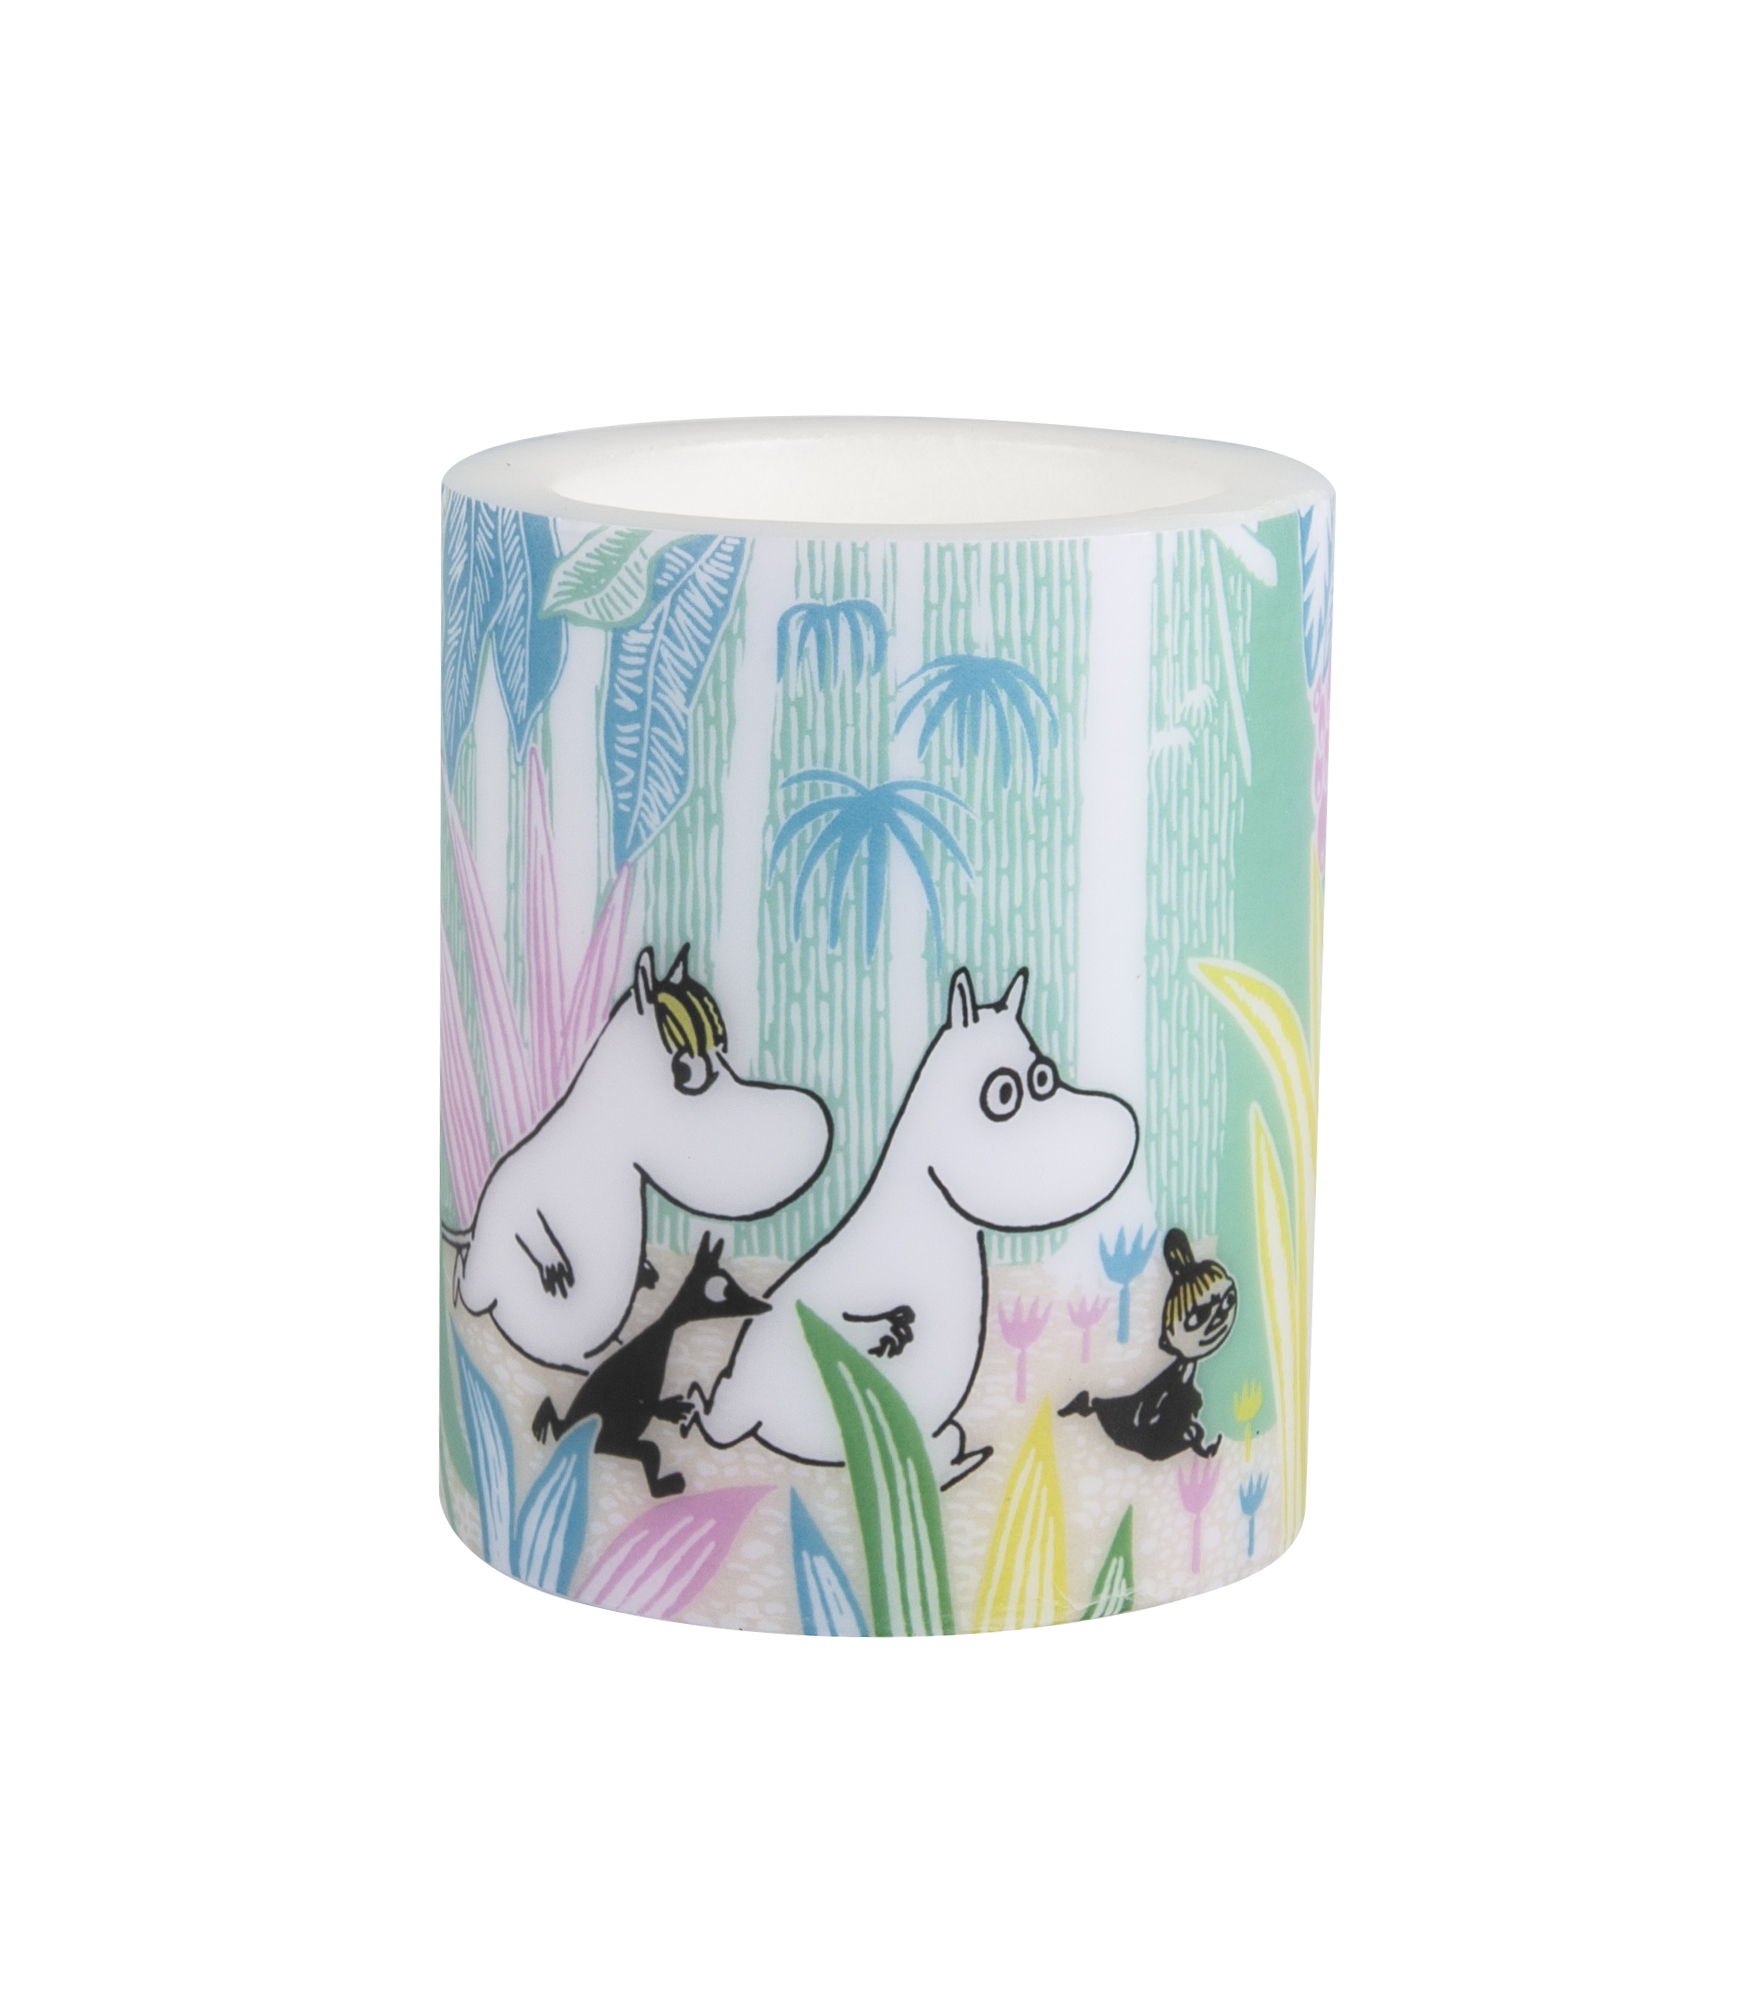 Muurla Moomins in the Jungle candle 12cm